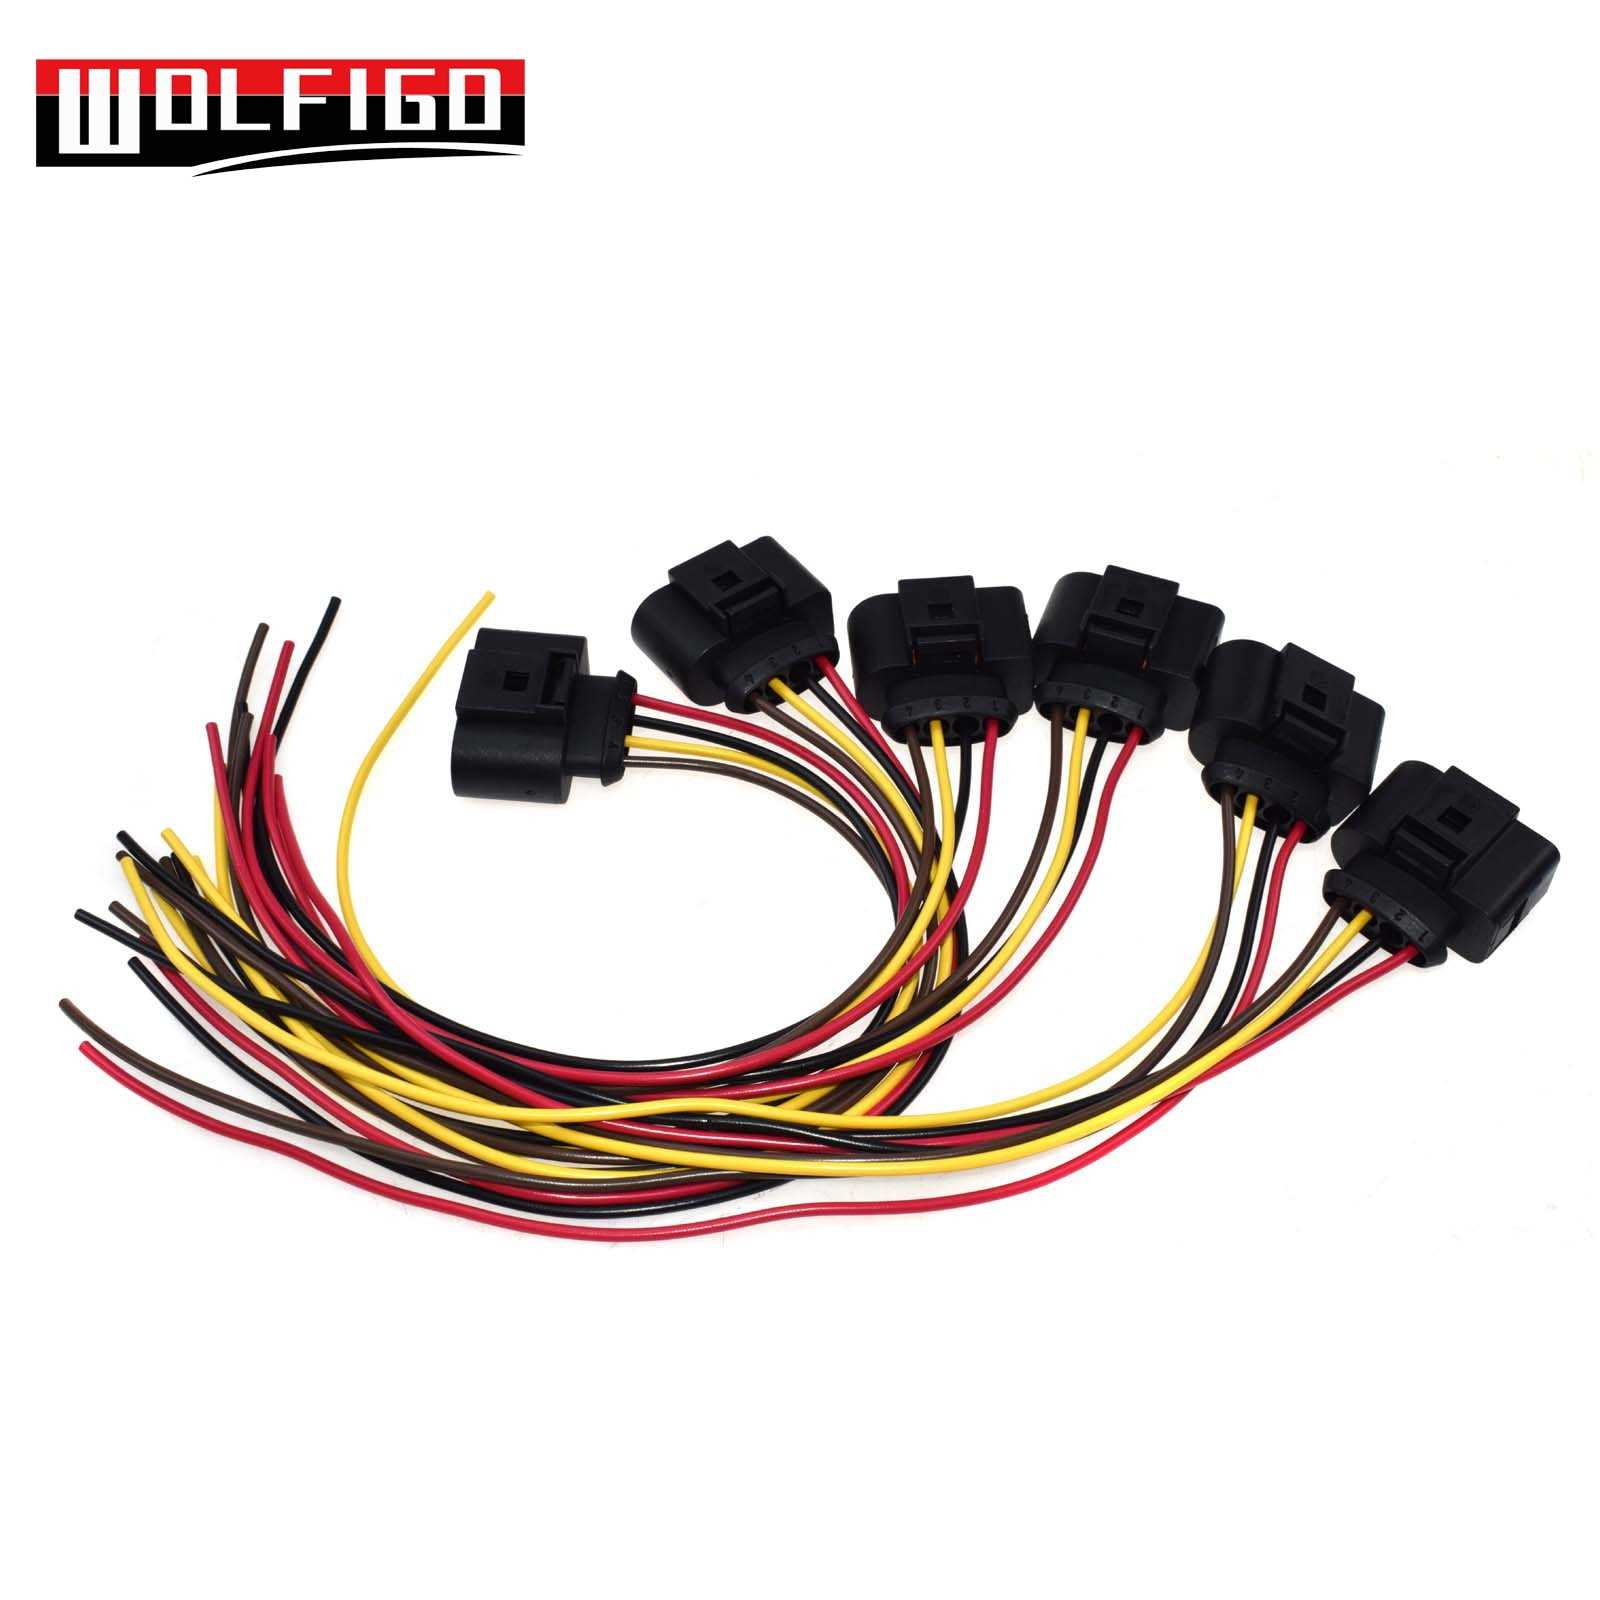 WOLFIGO 1PC or 5PCS Fuel Pump Cable Wire Wiring Harness Plug ... on